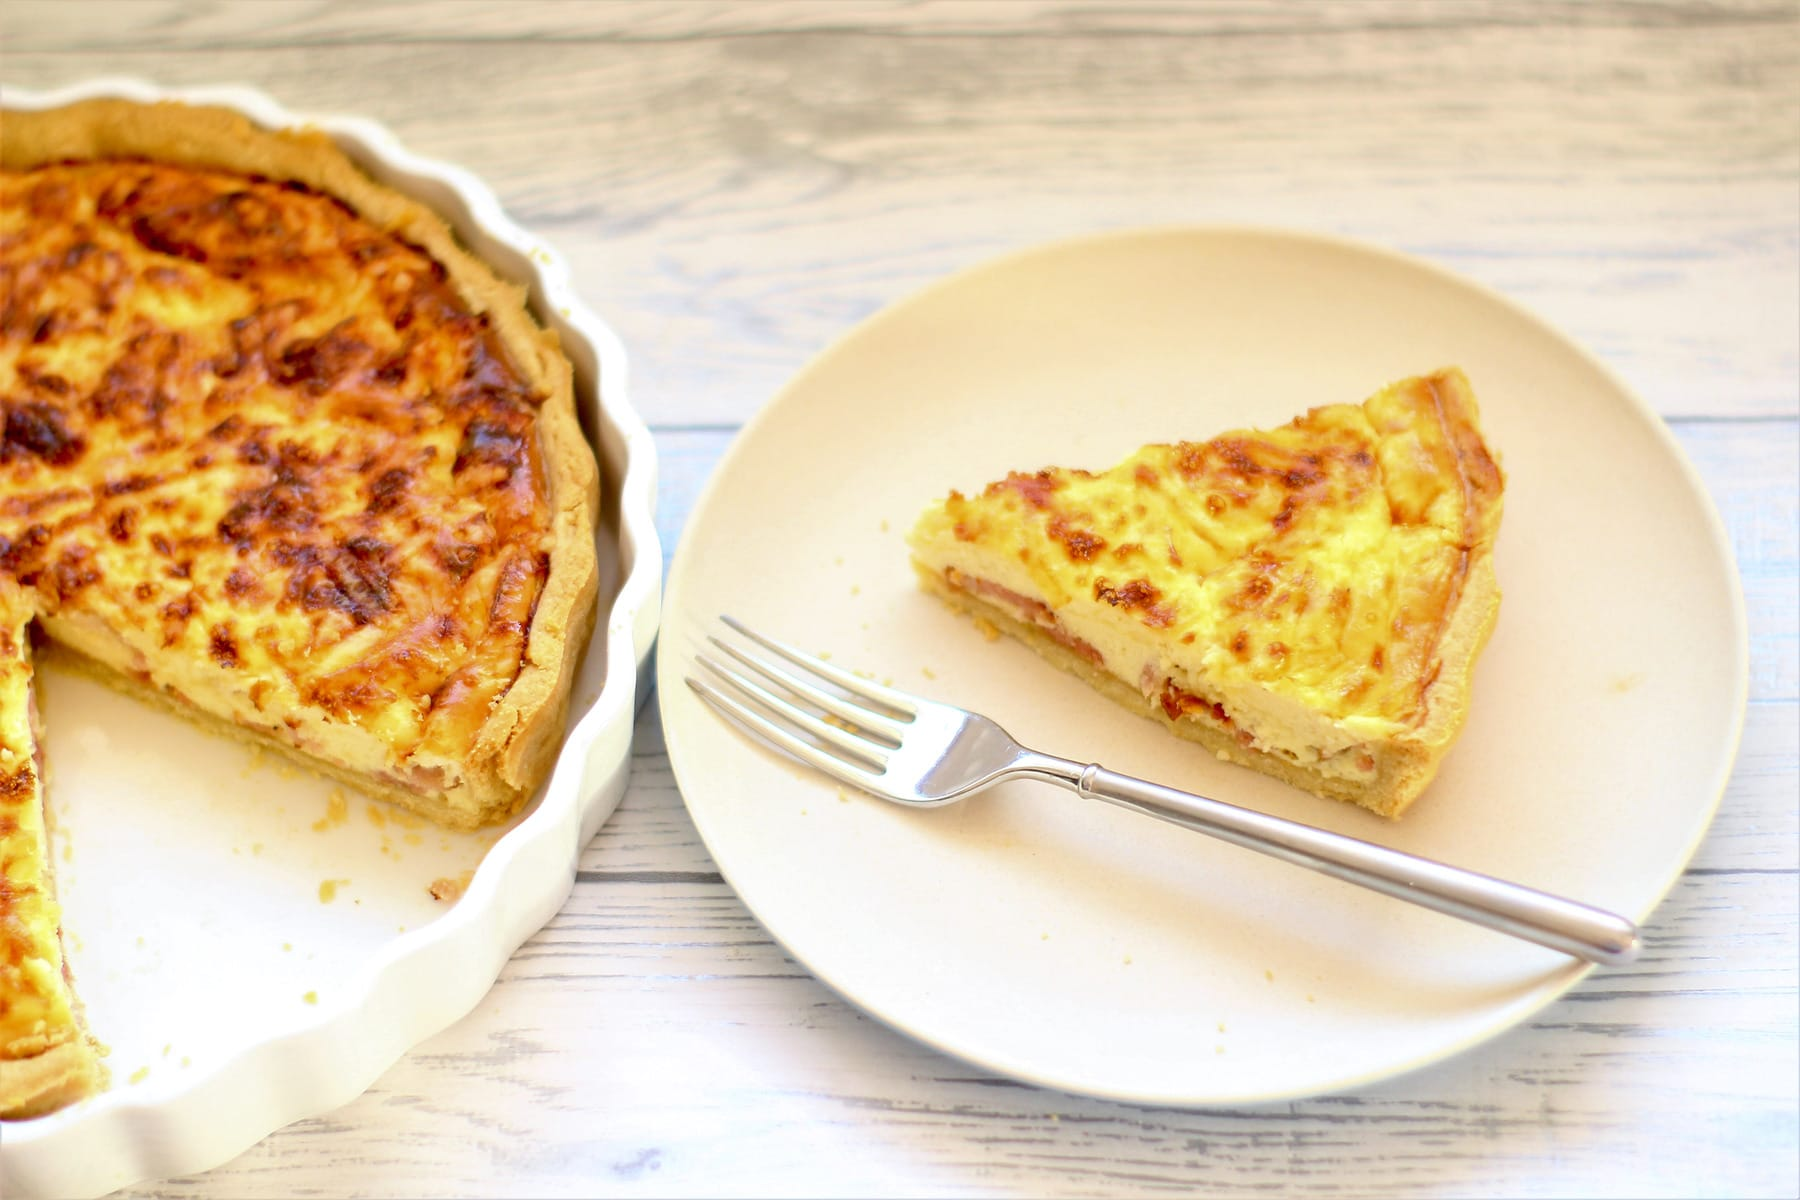 Slice of Quiche Lorraine on a plate